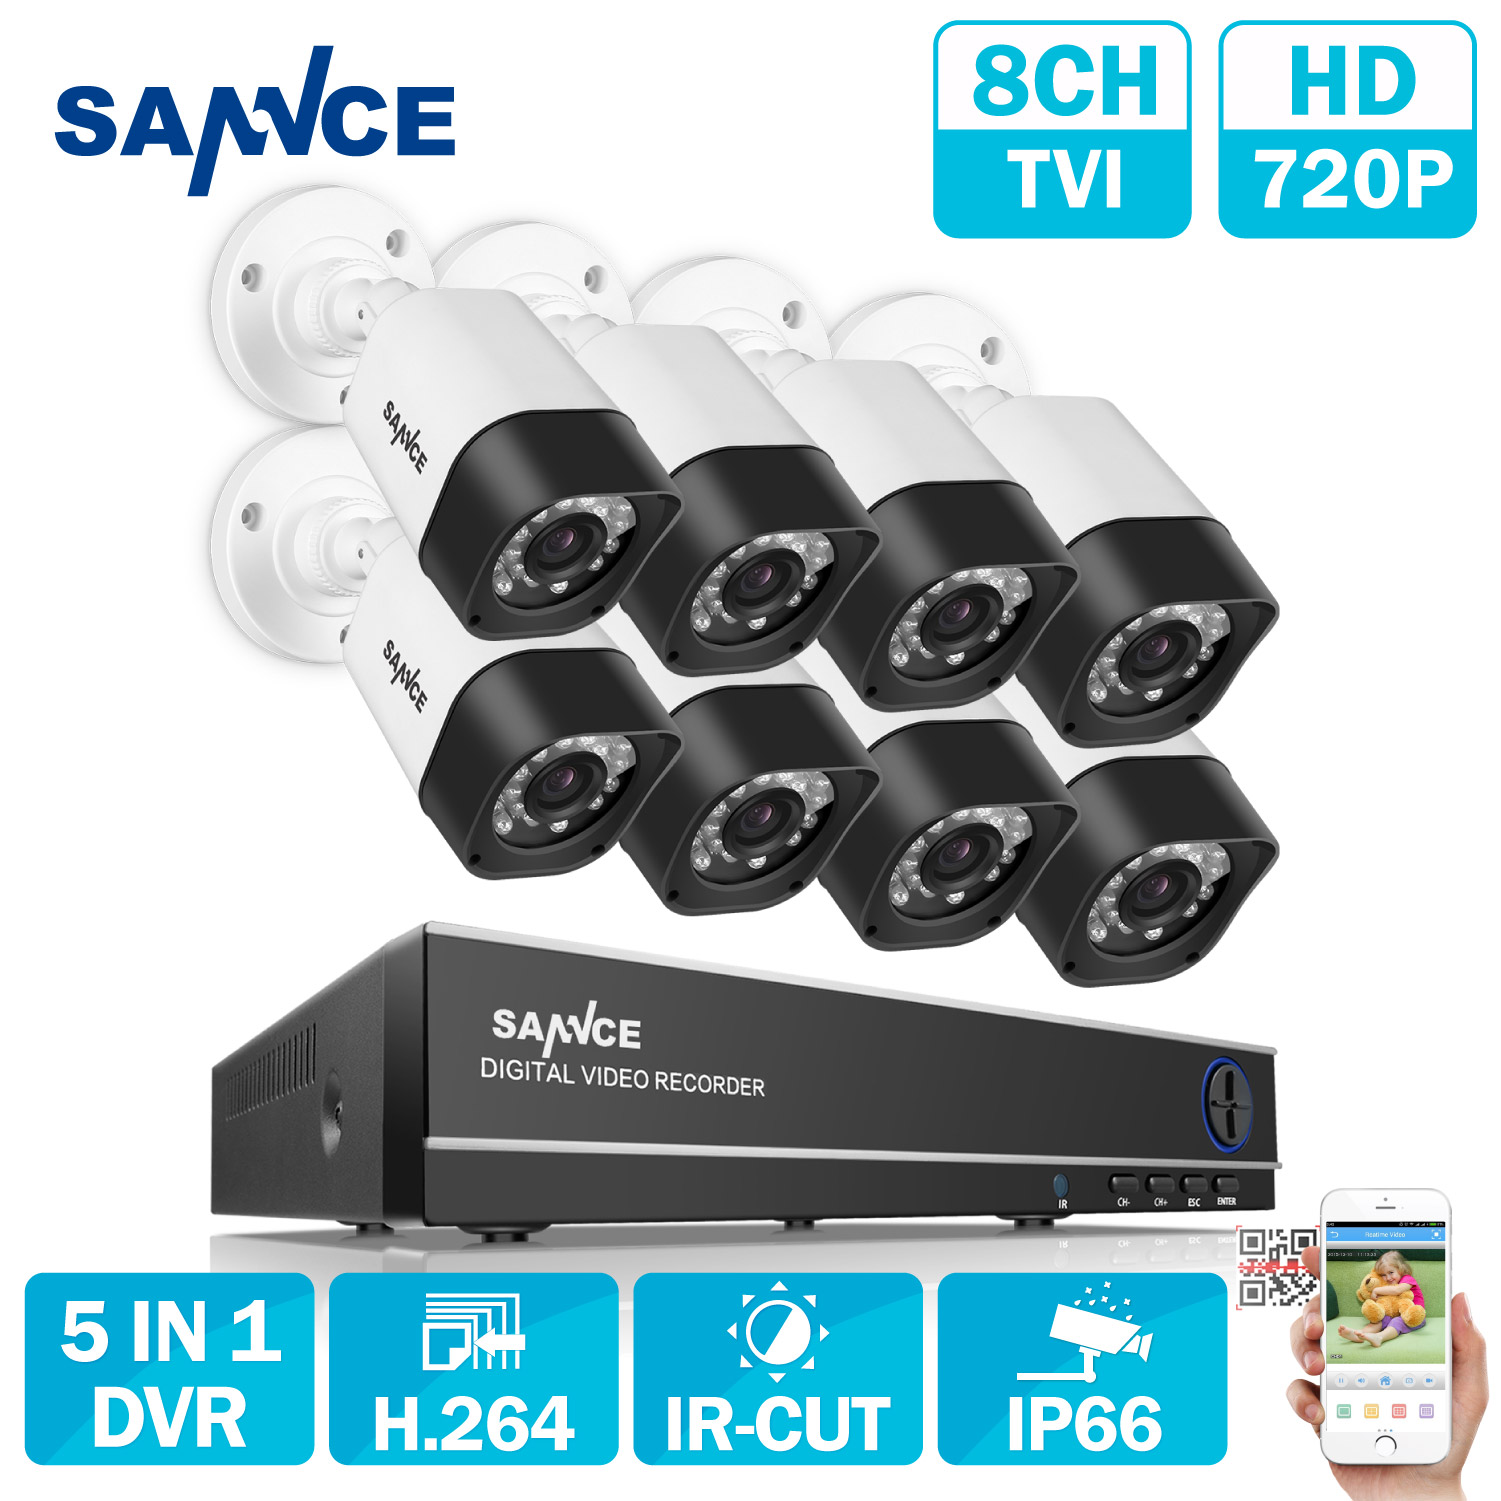 SANNCE 8CH CCTV System 720P HDMI AHD CCTV DVR 8PCS 1.0 MP IR Outdoor Security Camera 1200 TVL Camera Surveillance System